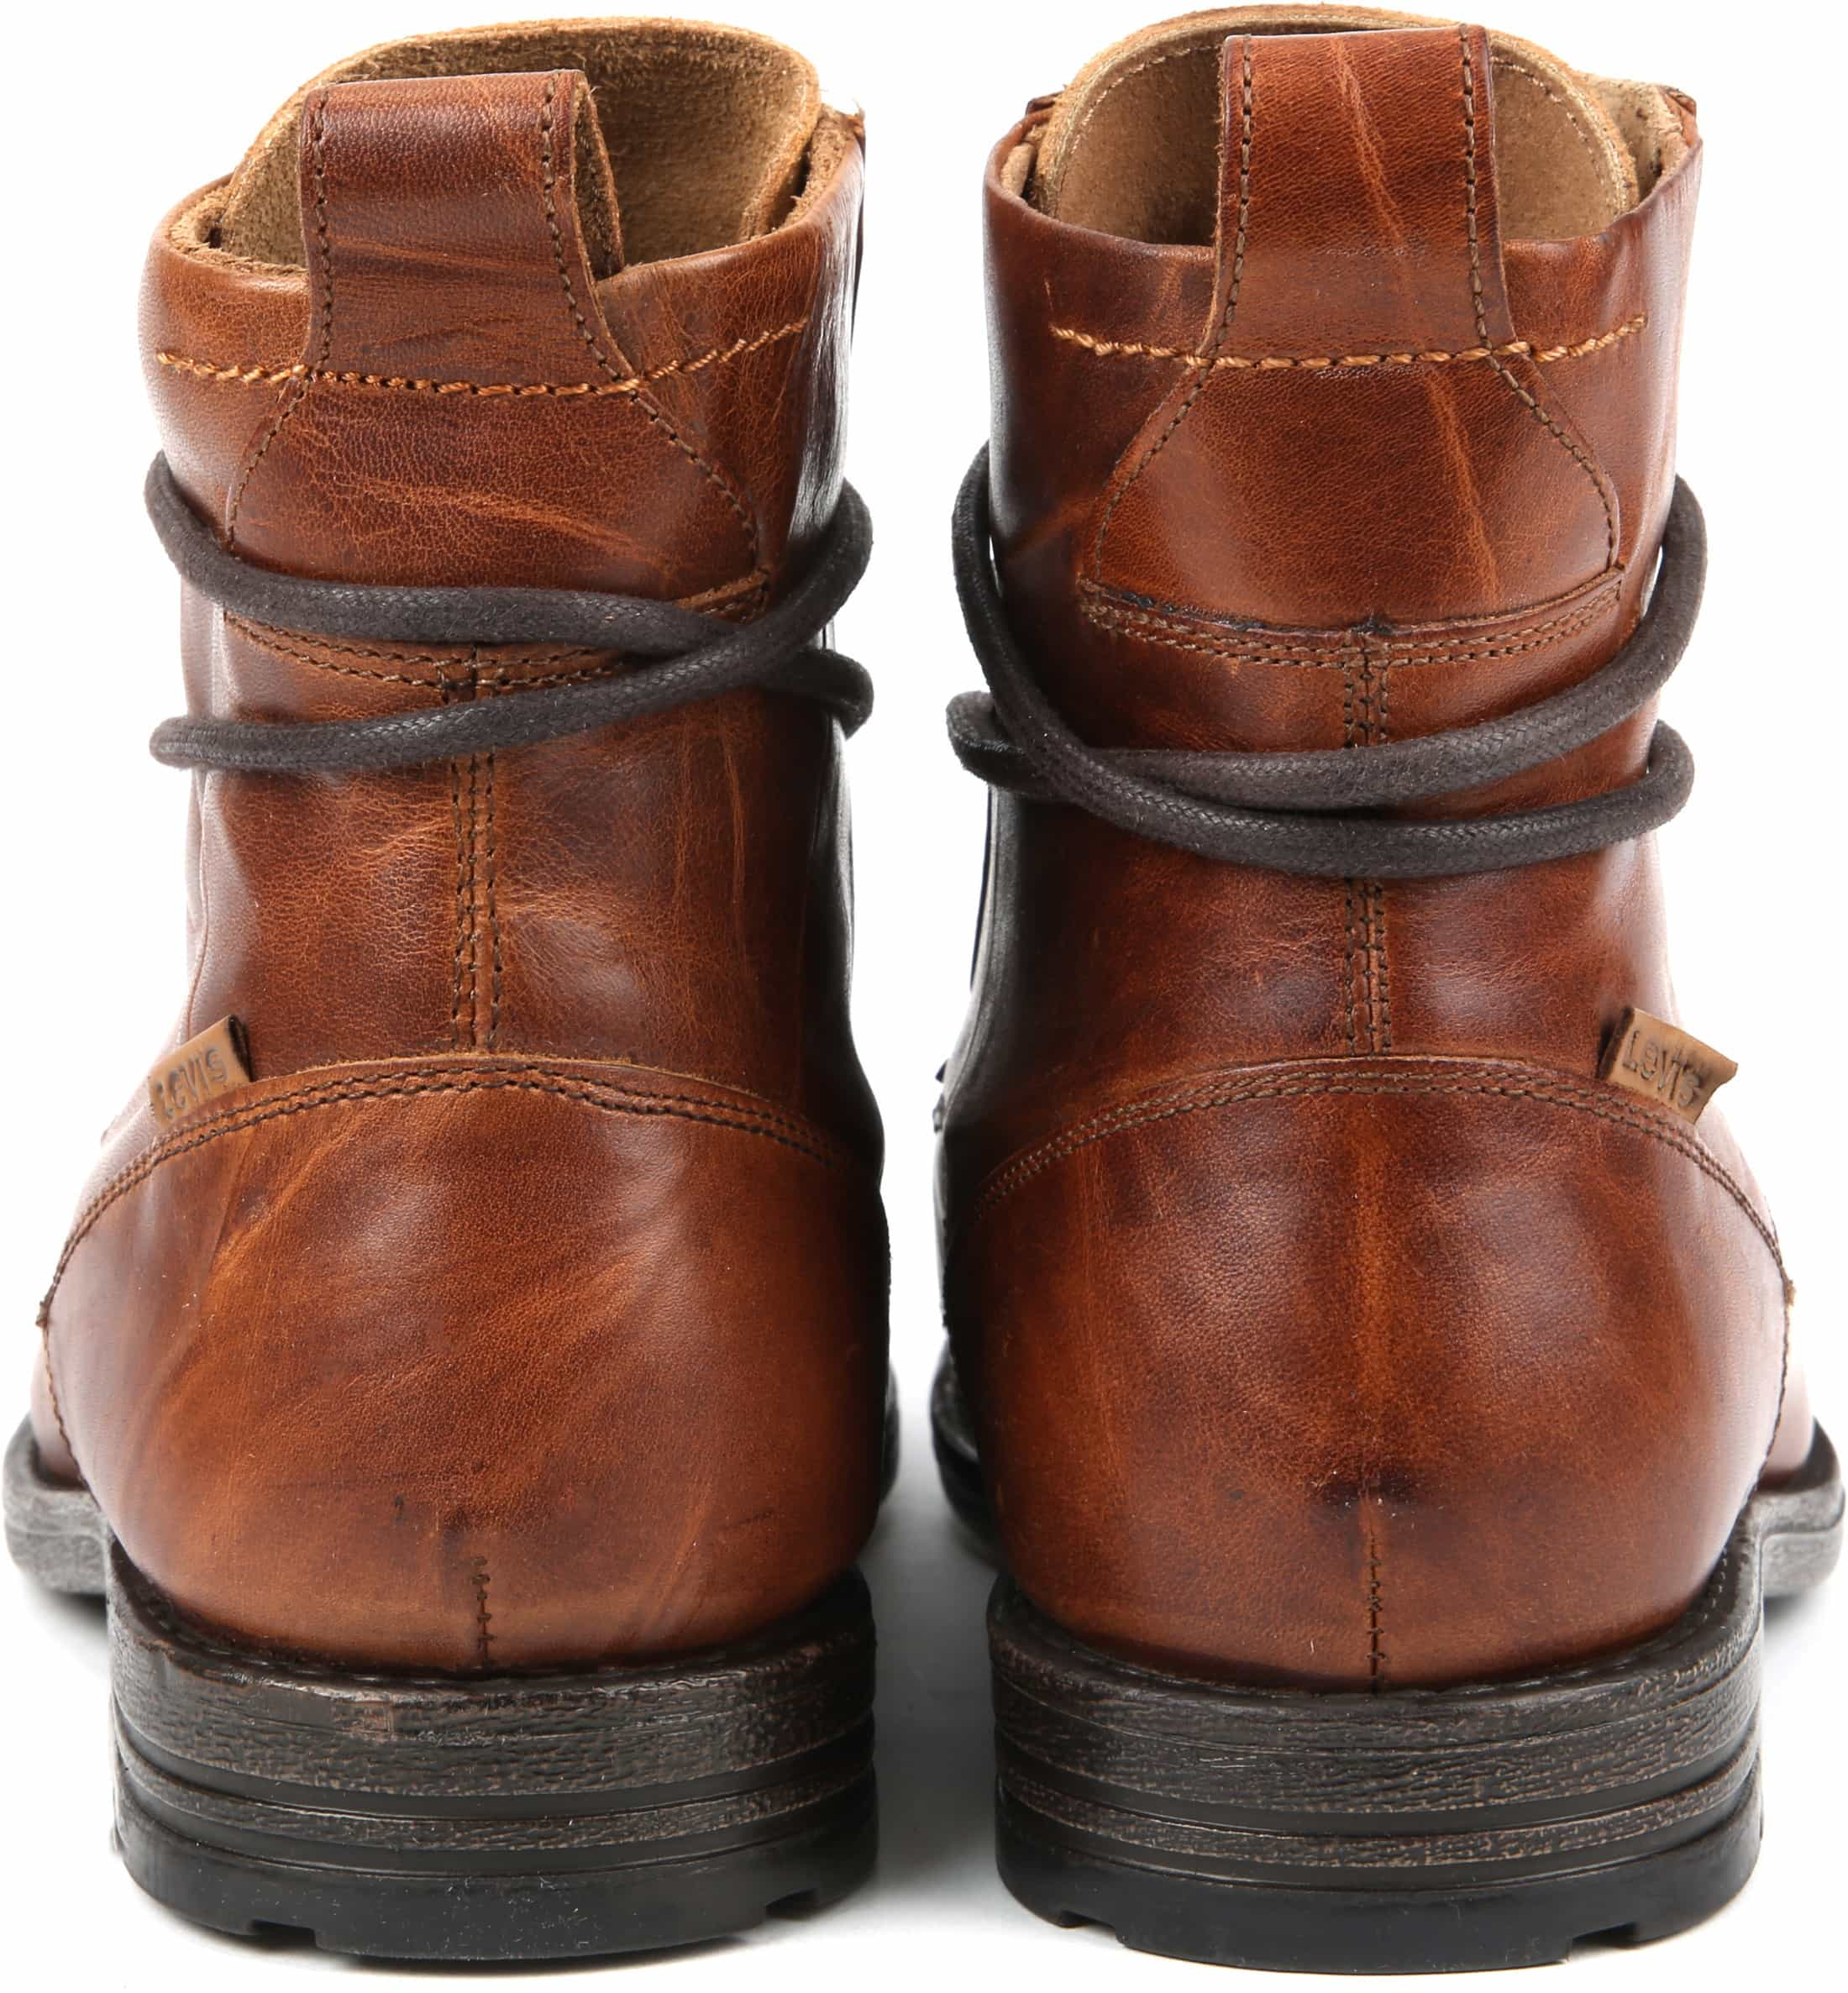 Levi's Boots Emerson Brown Lether foto 2